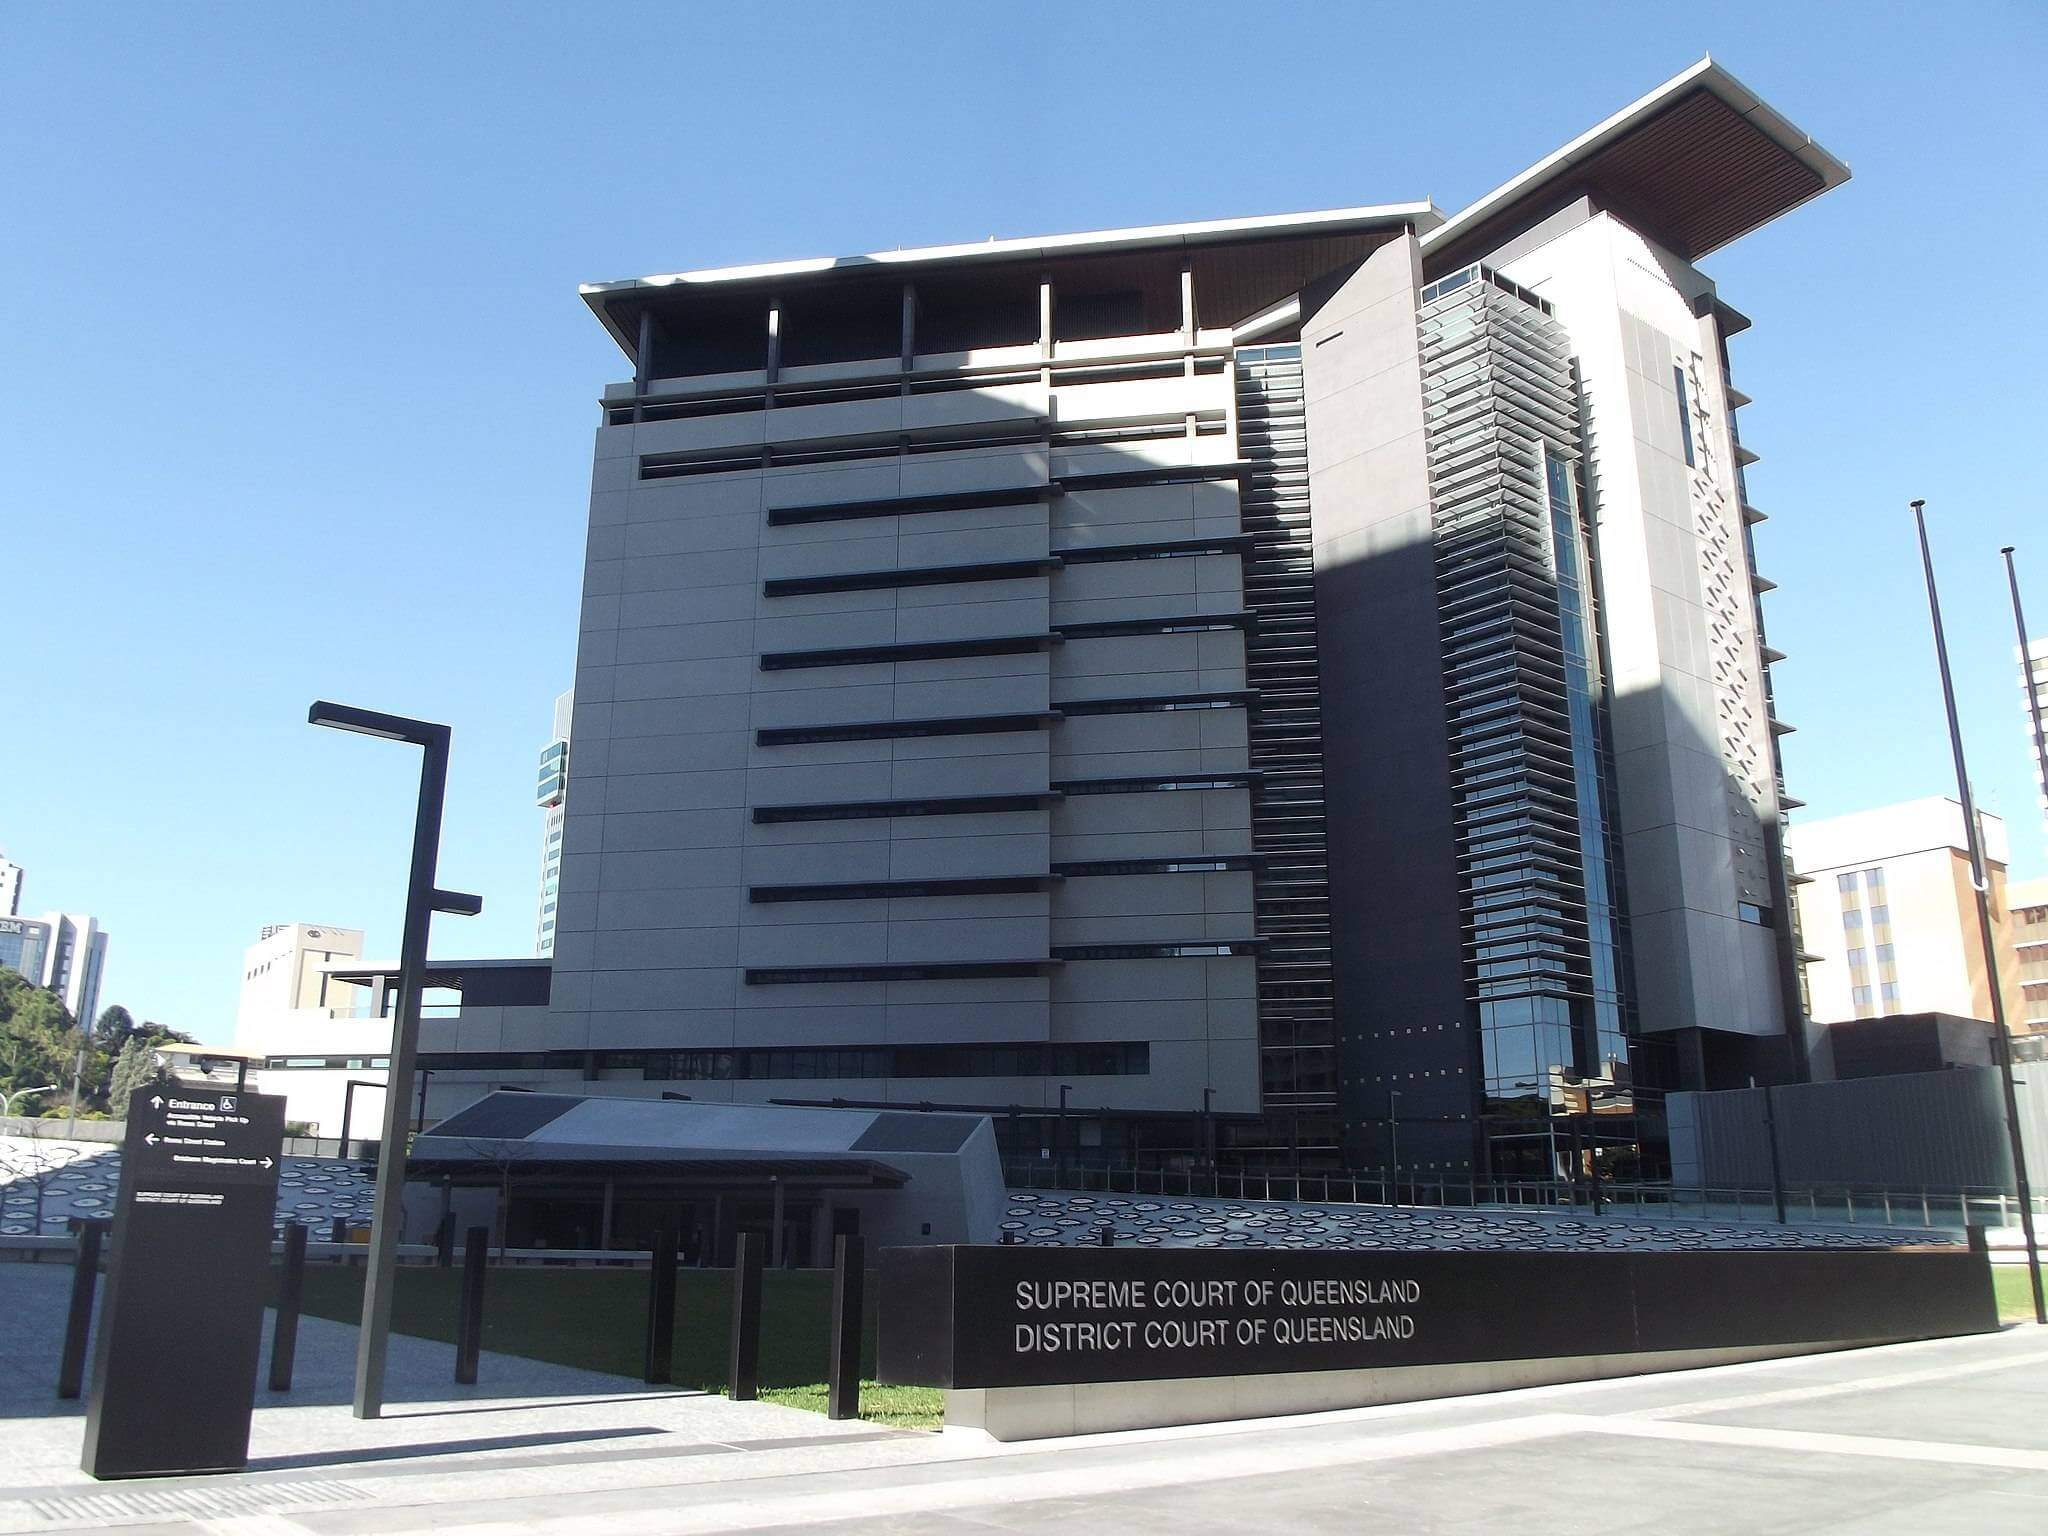 Brisbane Supreme and District Court